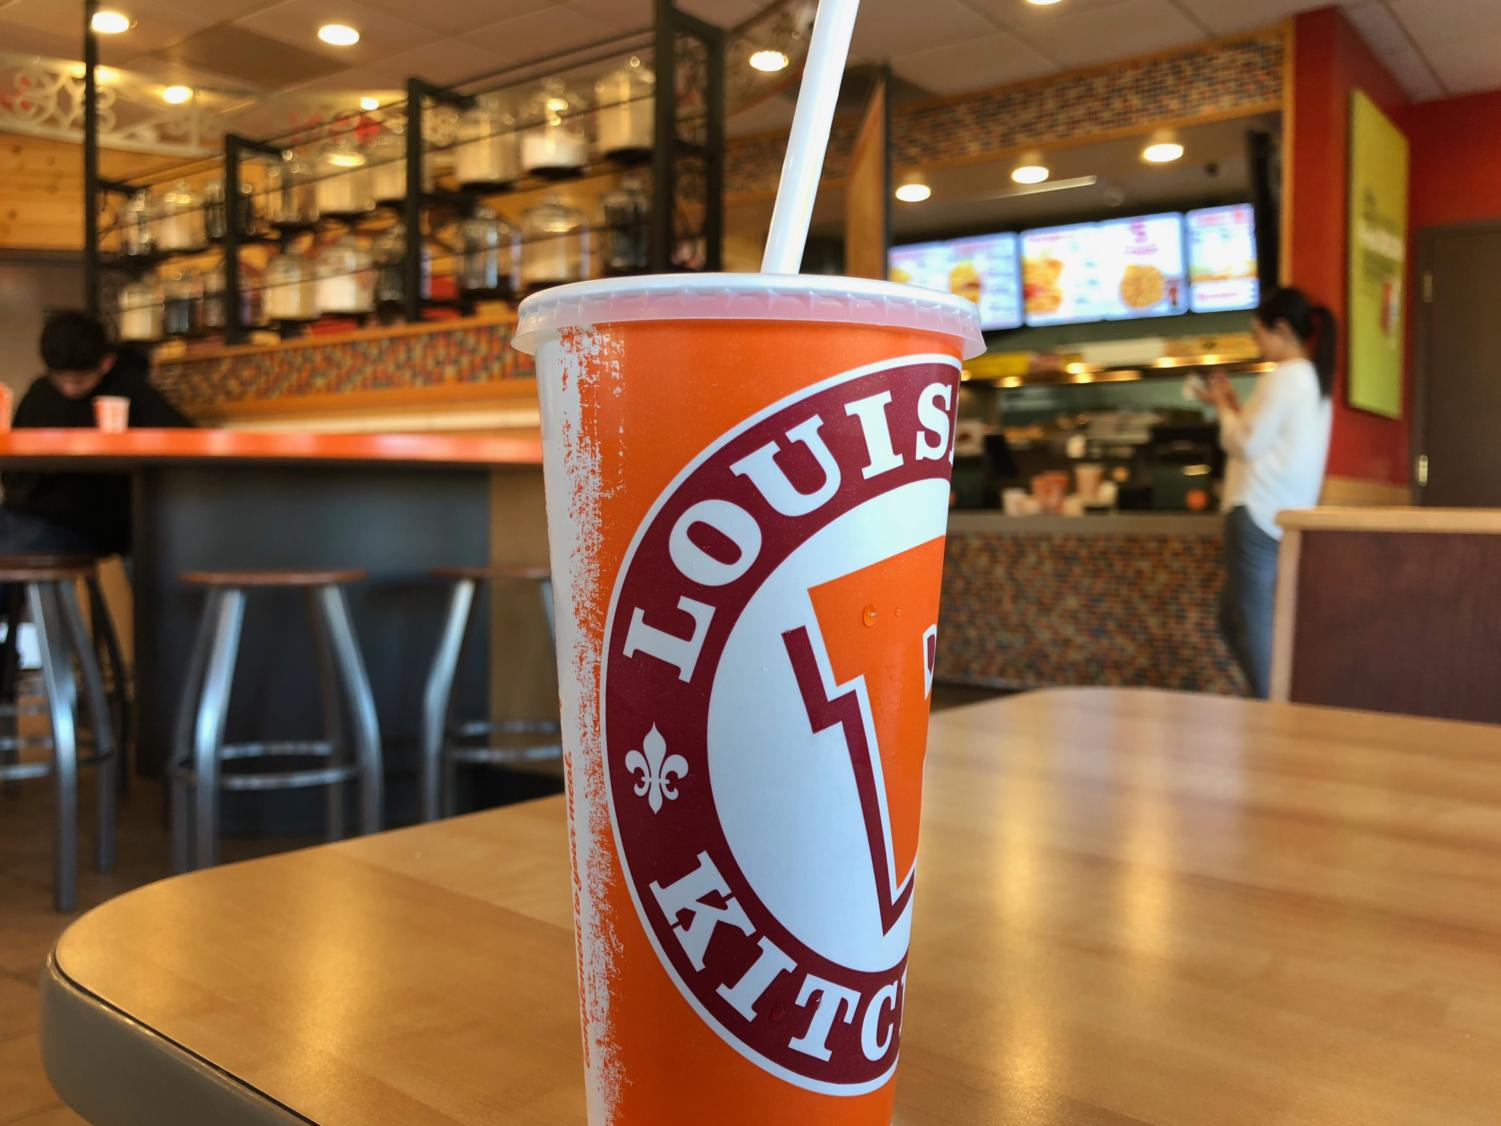 Popeyes has a place where you can get fountain drinks.